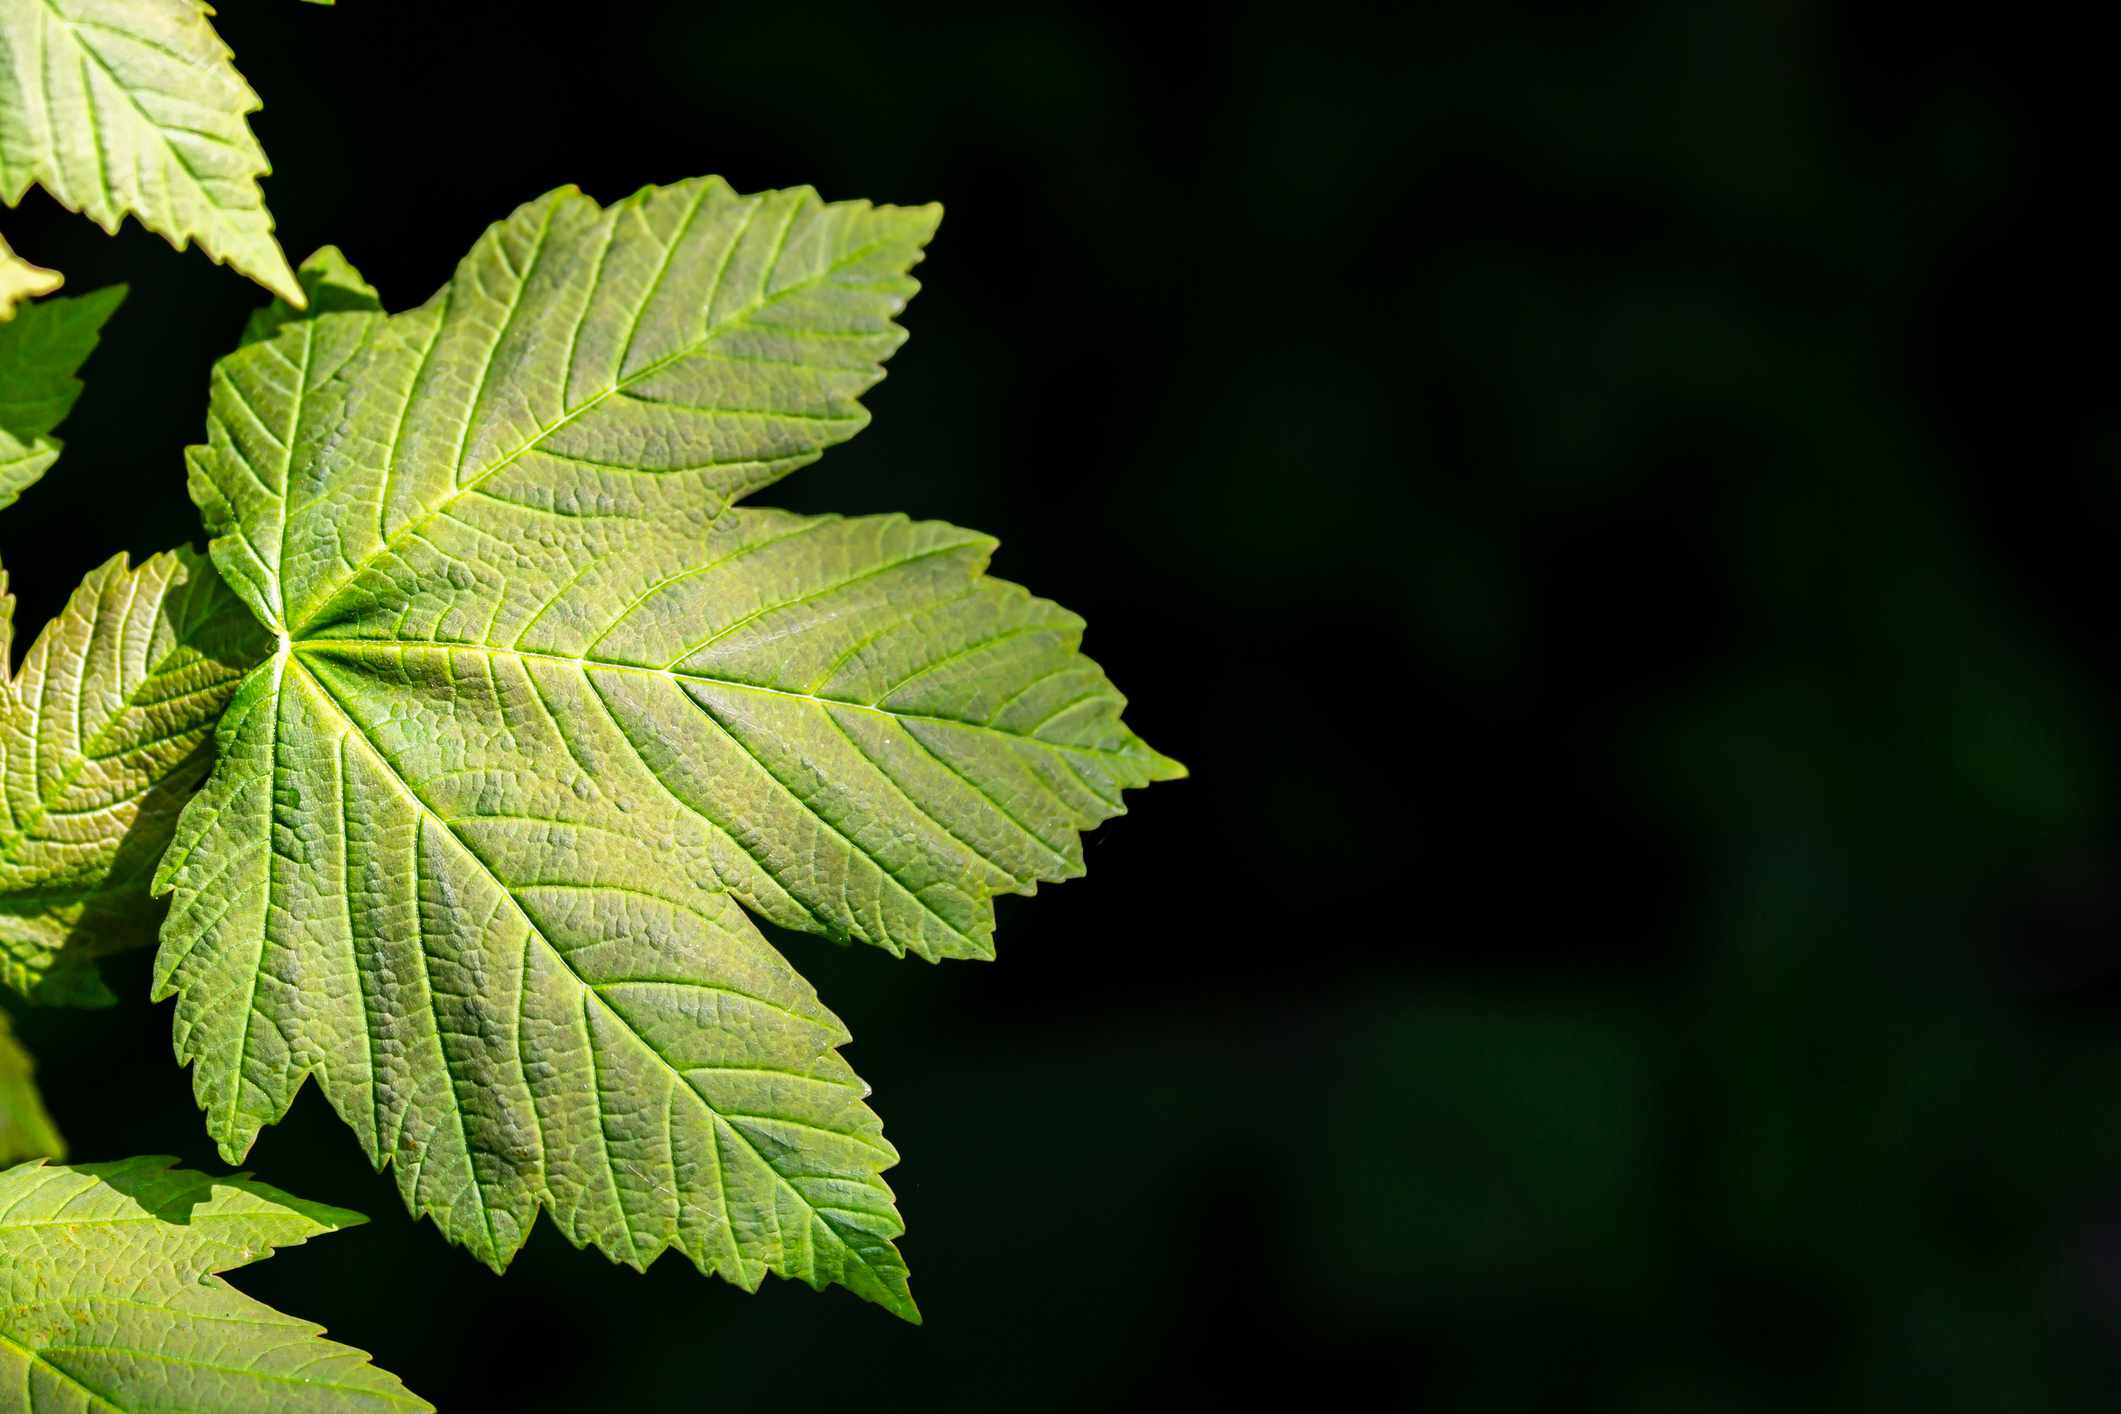 Green sycamore leaf with pointed edges.